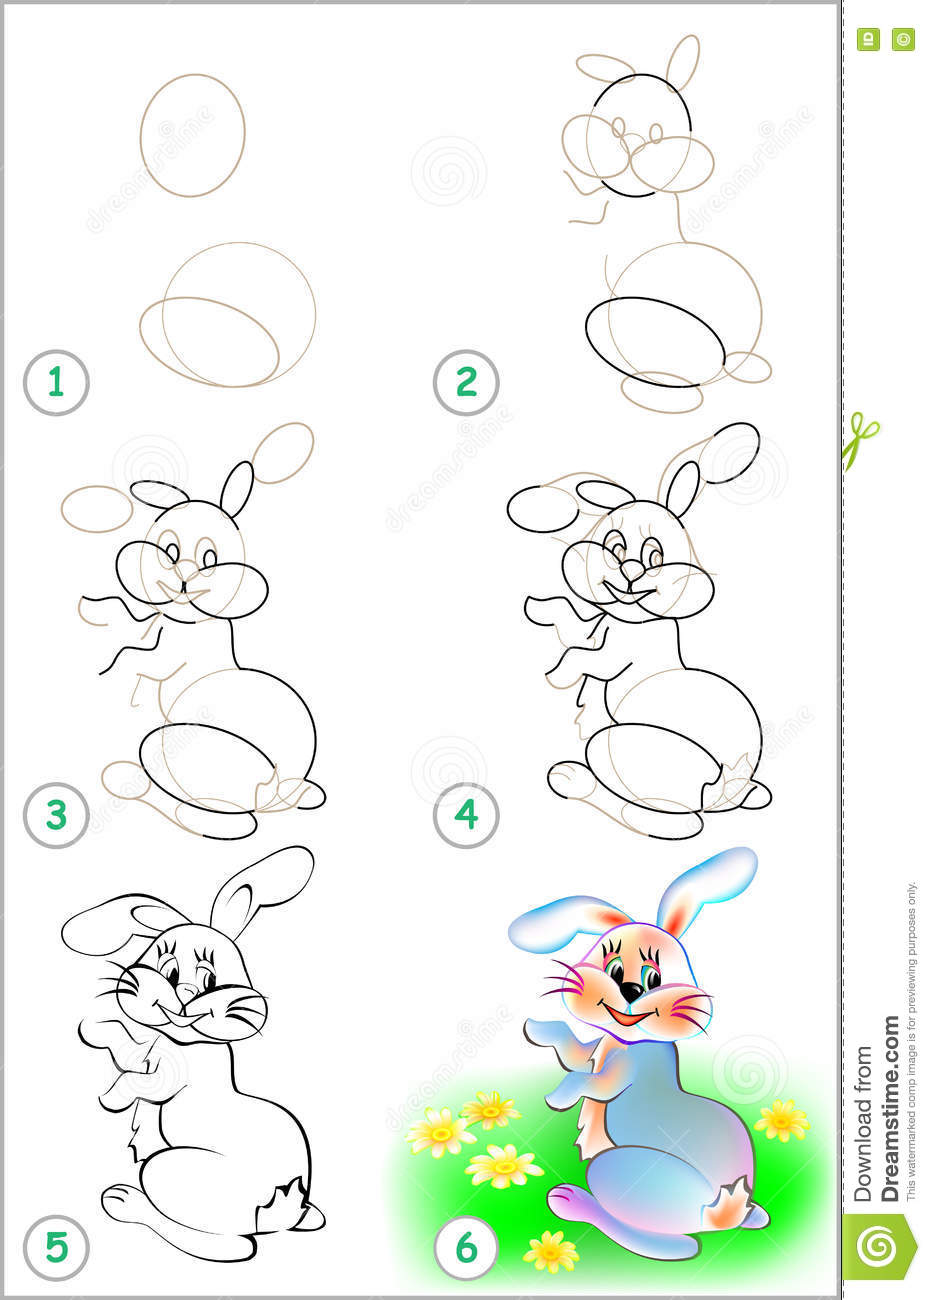 Draw Drawing How Image Learn Page Rabbit